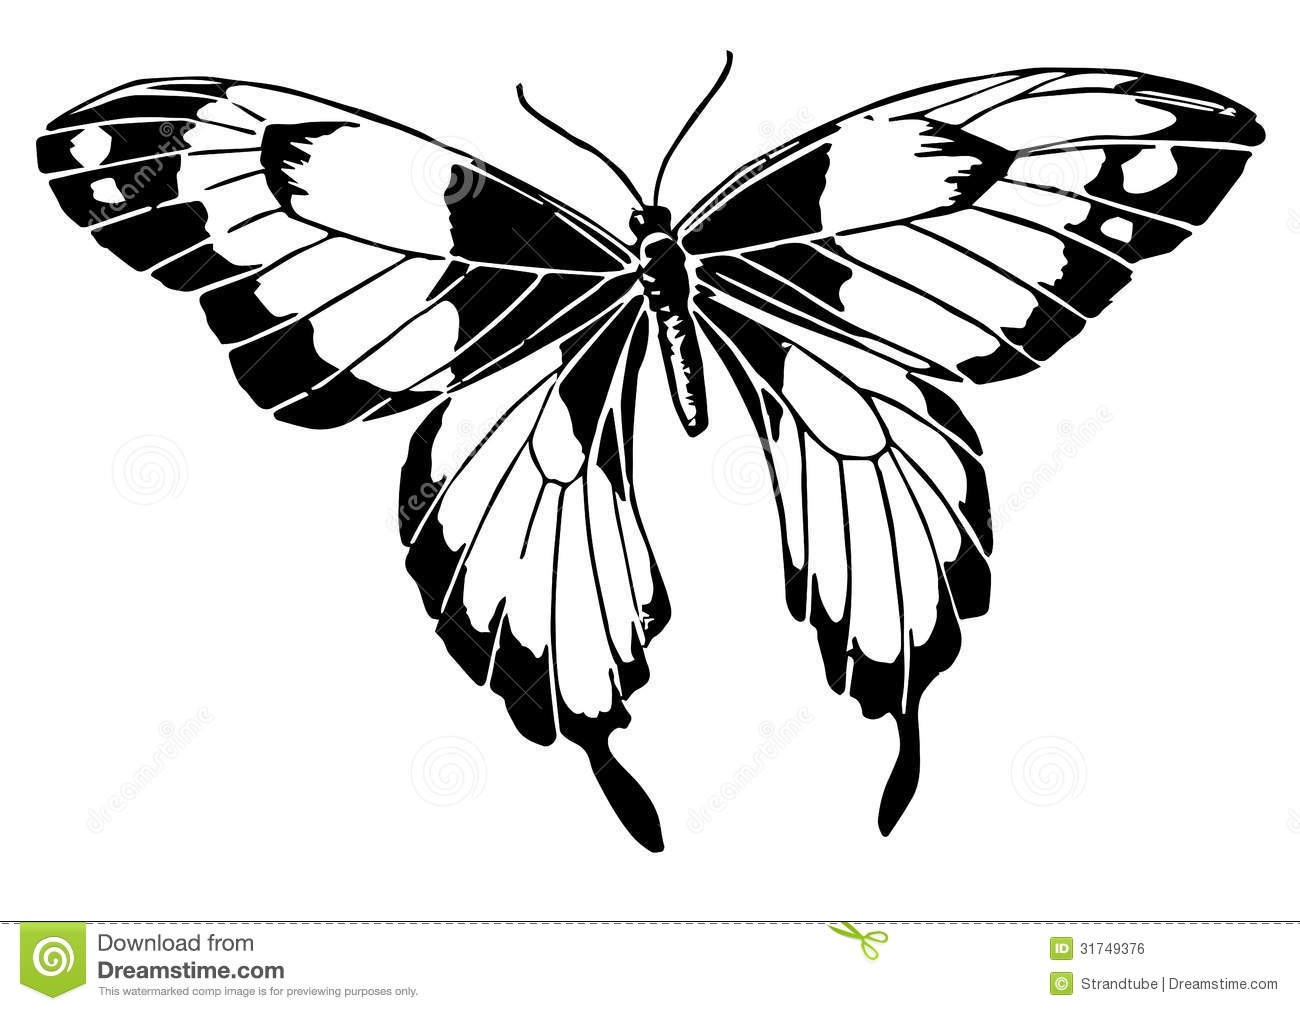 Line Art Design Illustration : Line illustration of a butterfly eps stock vector